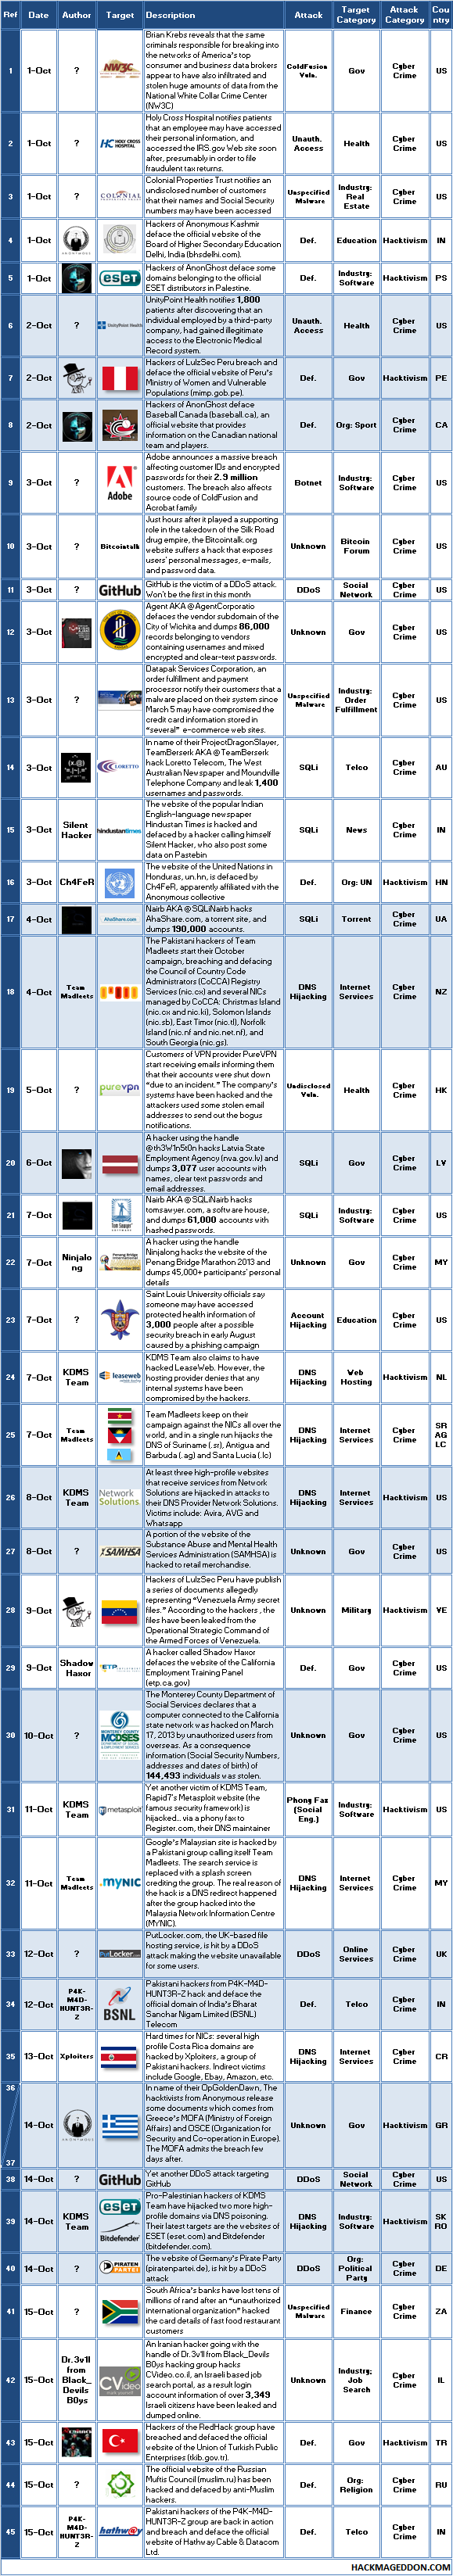 1-15 October 2013 Cyber Attacks Timeline